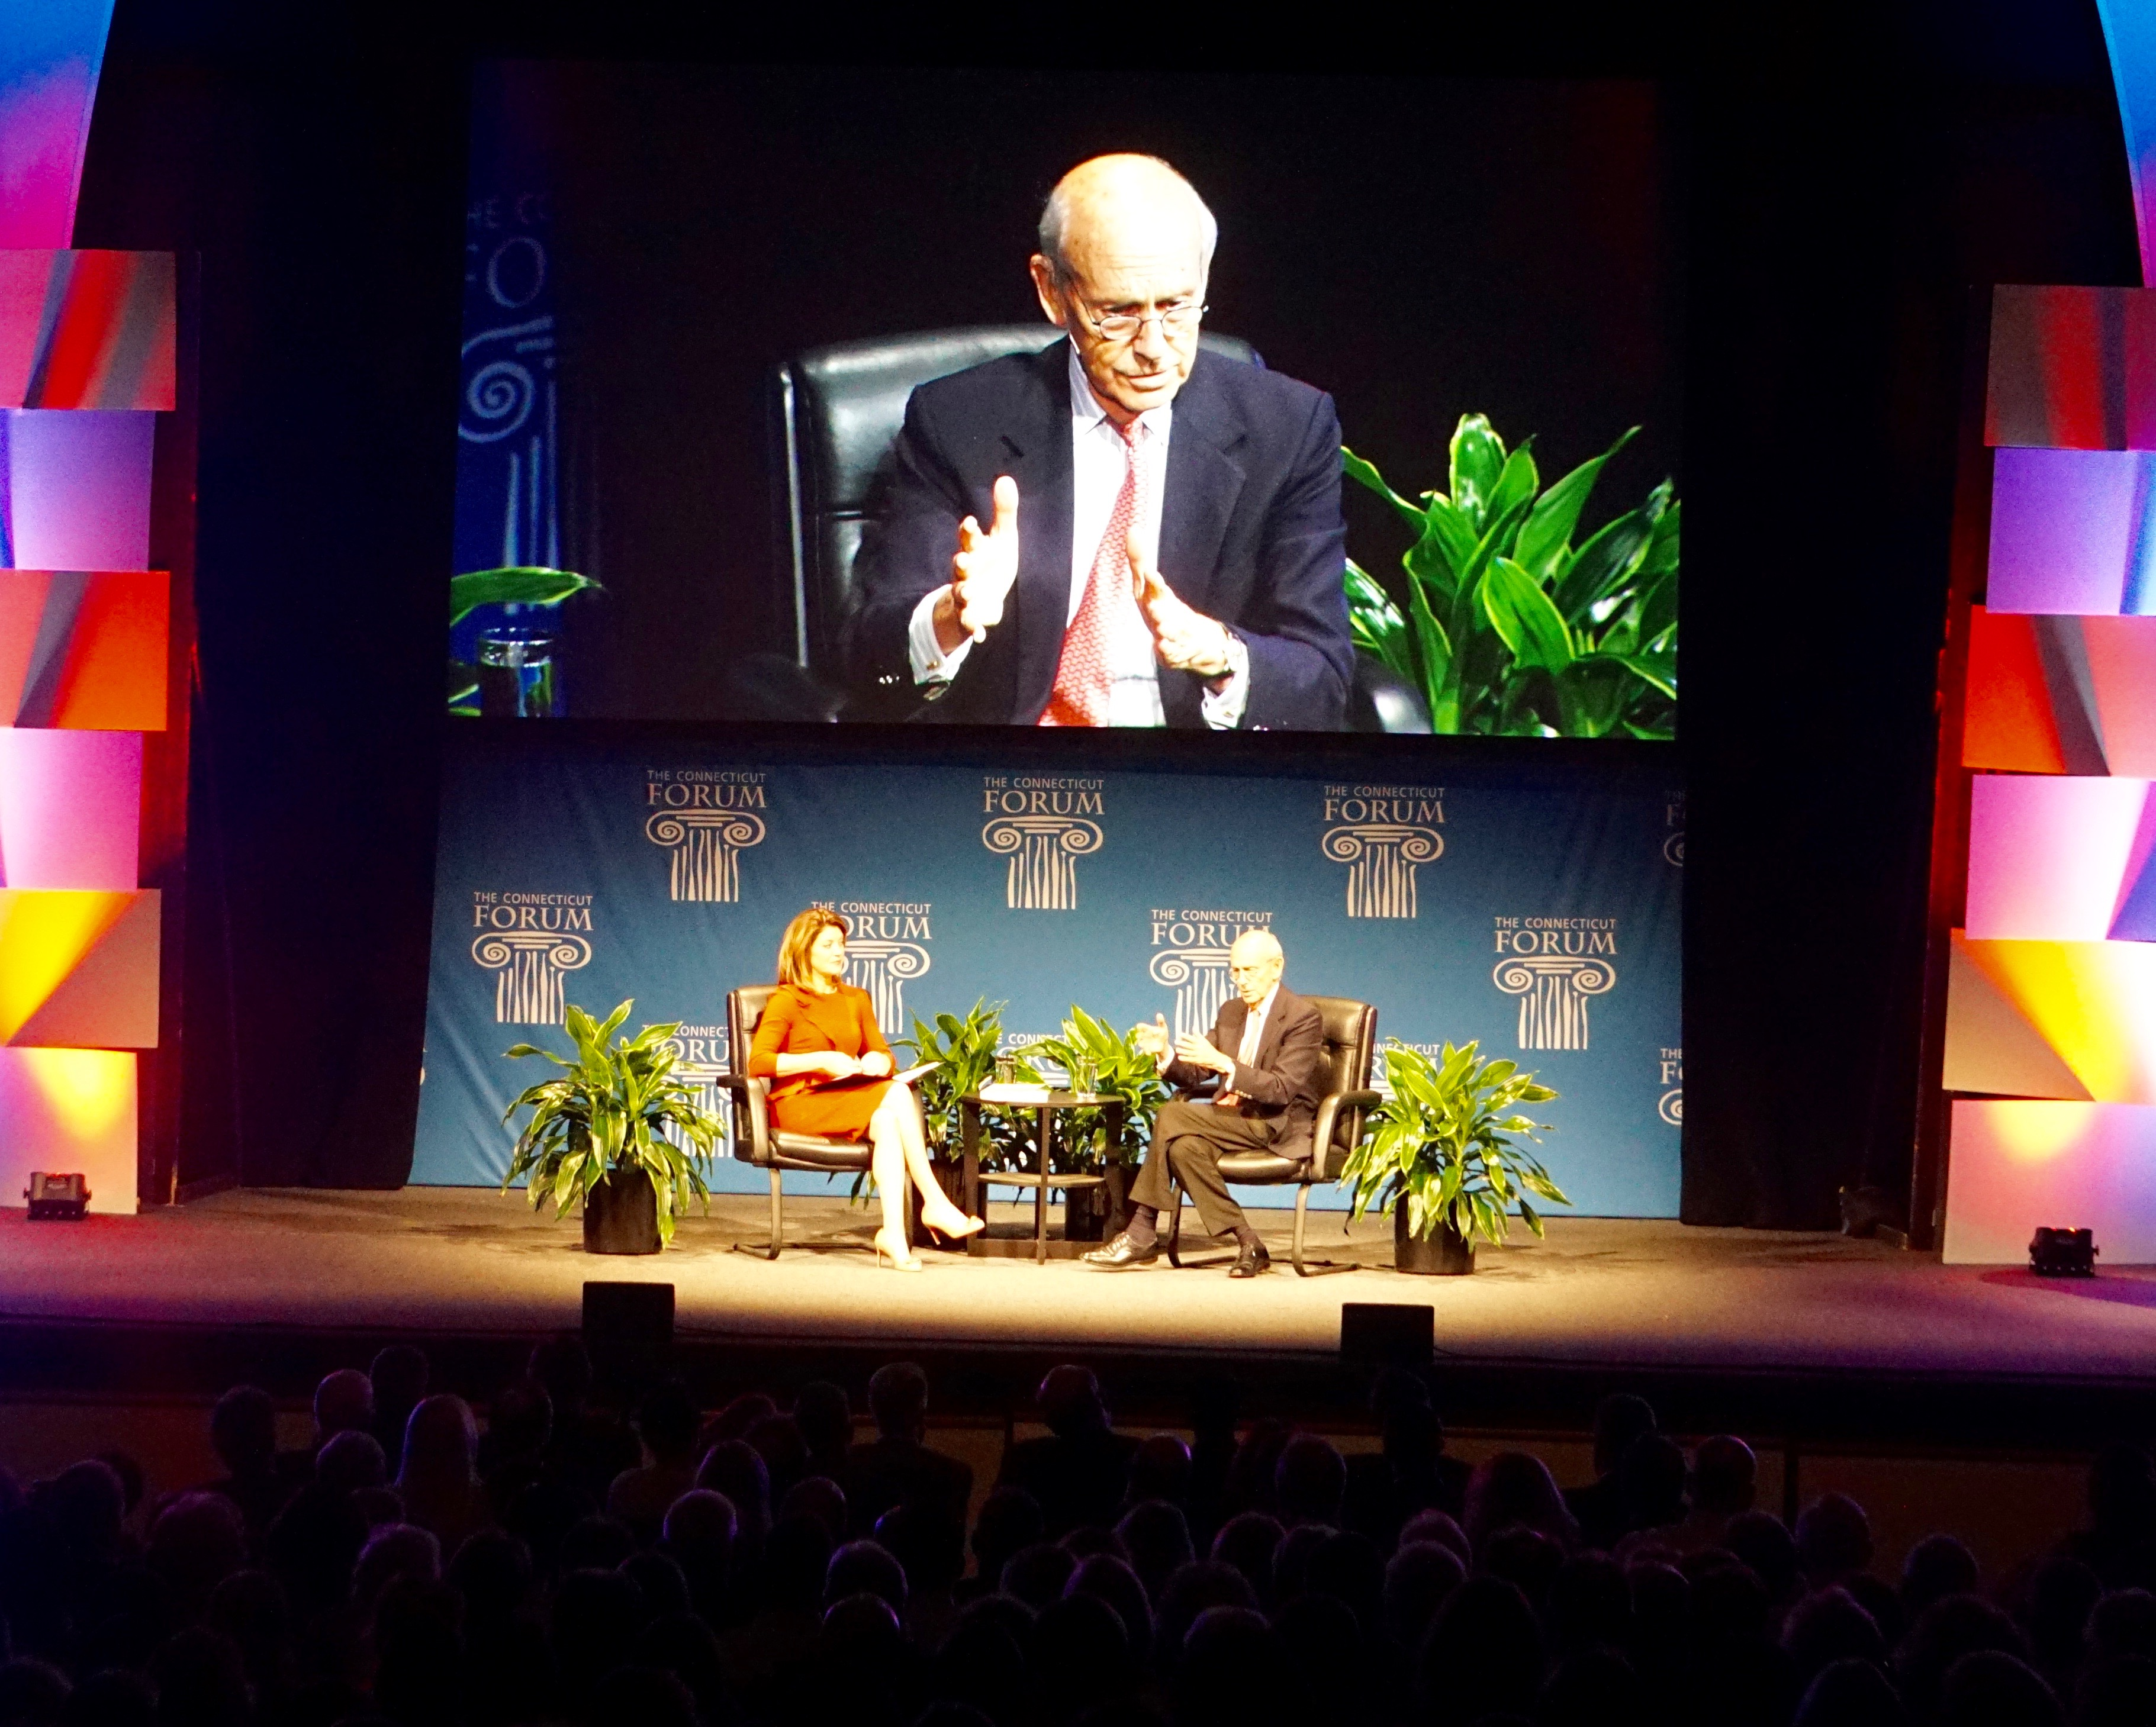 A careful conversation with Justice Stephen G. Breyer